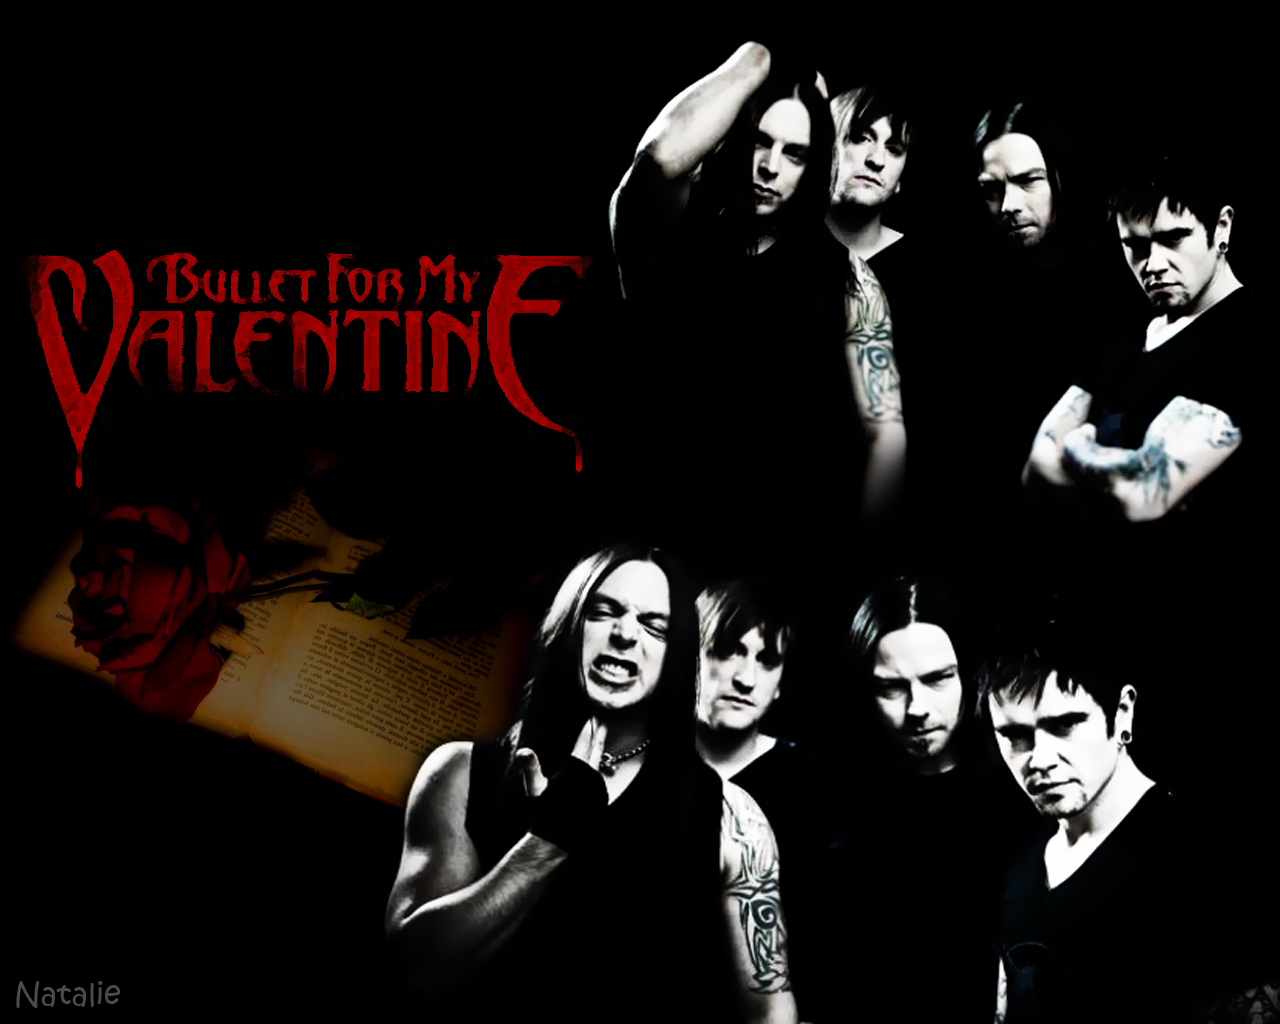 Bullet For My Valentine Images Bfmv Hd Wallpaper And Background